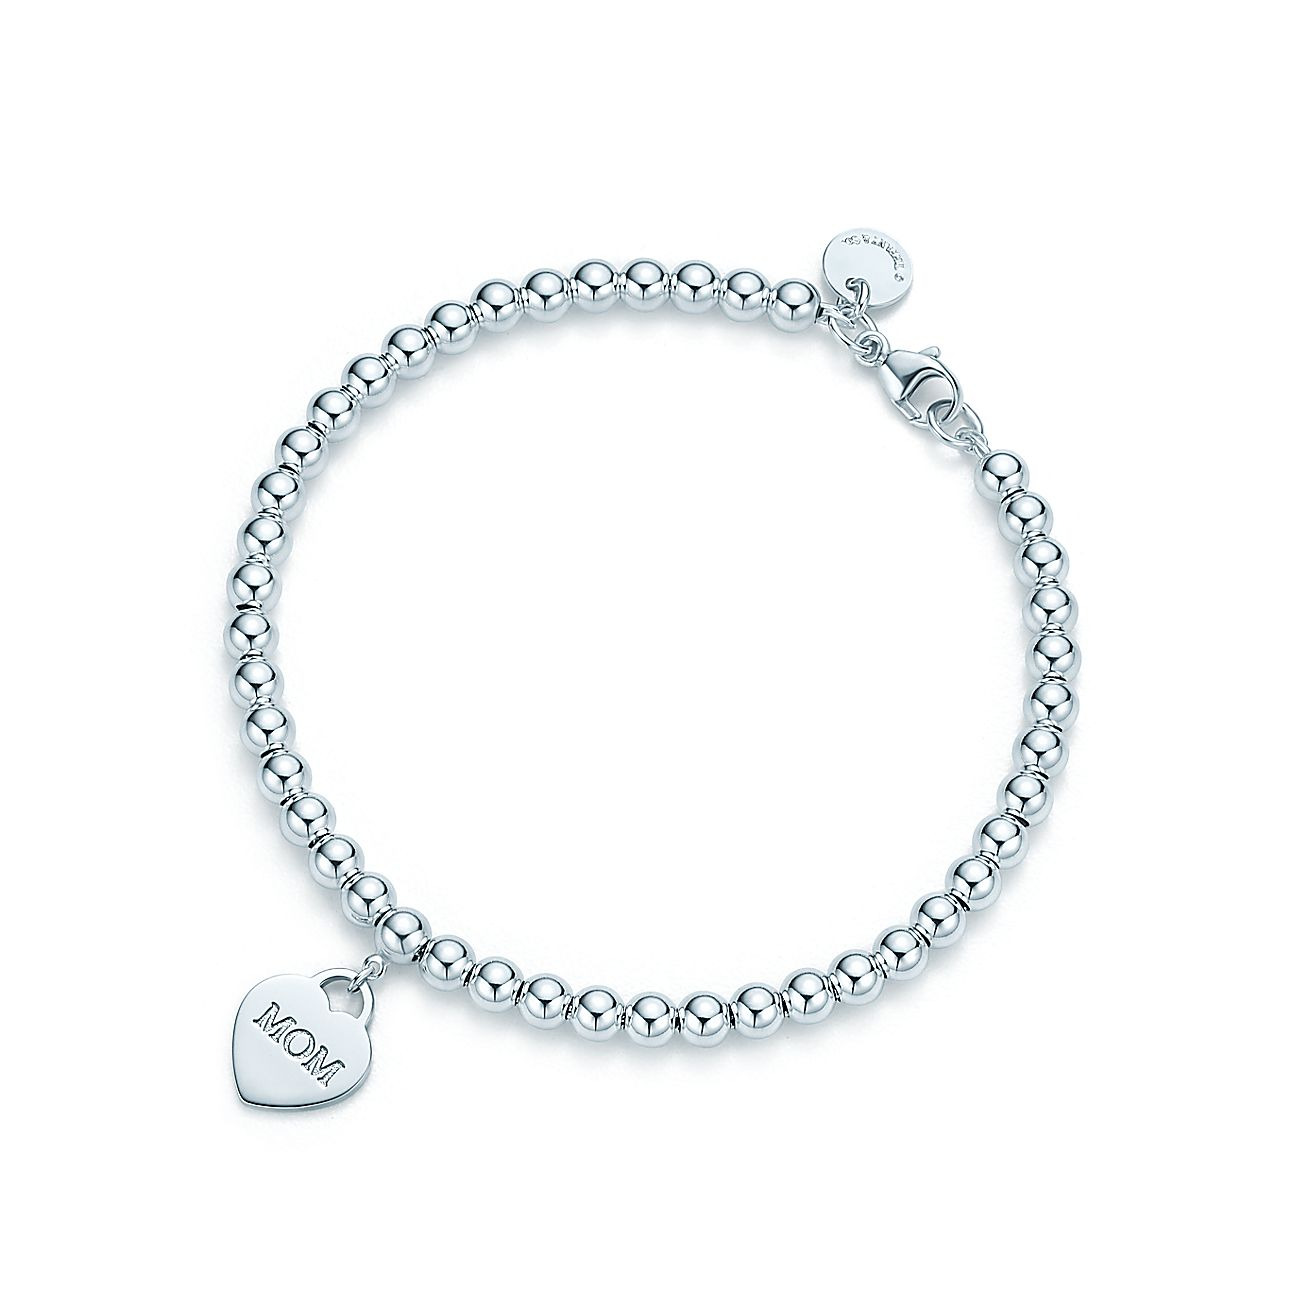 Mom heart tag in sterling silver on a bead bracelet, large